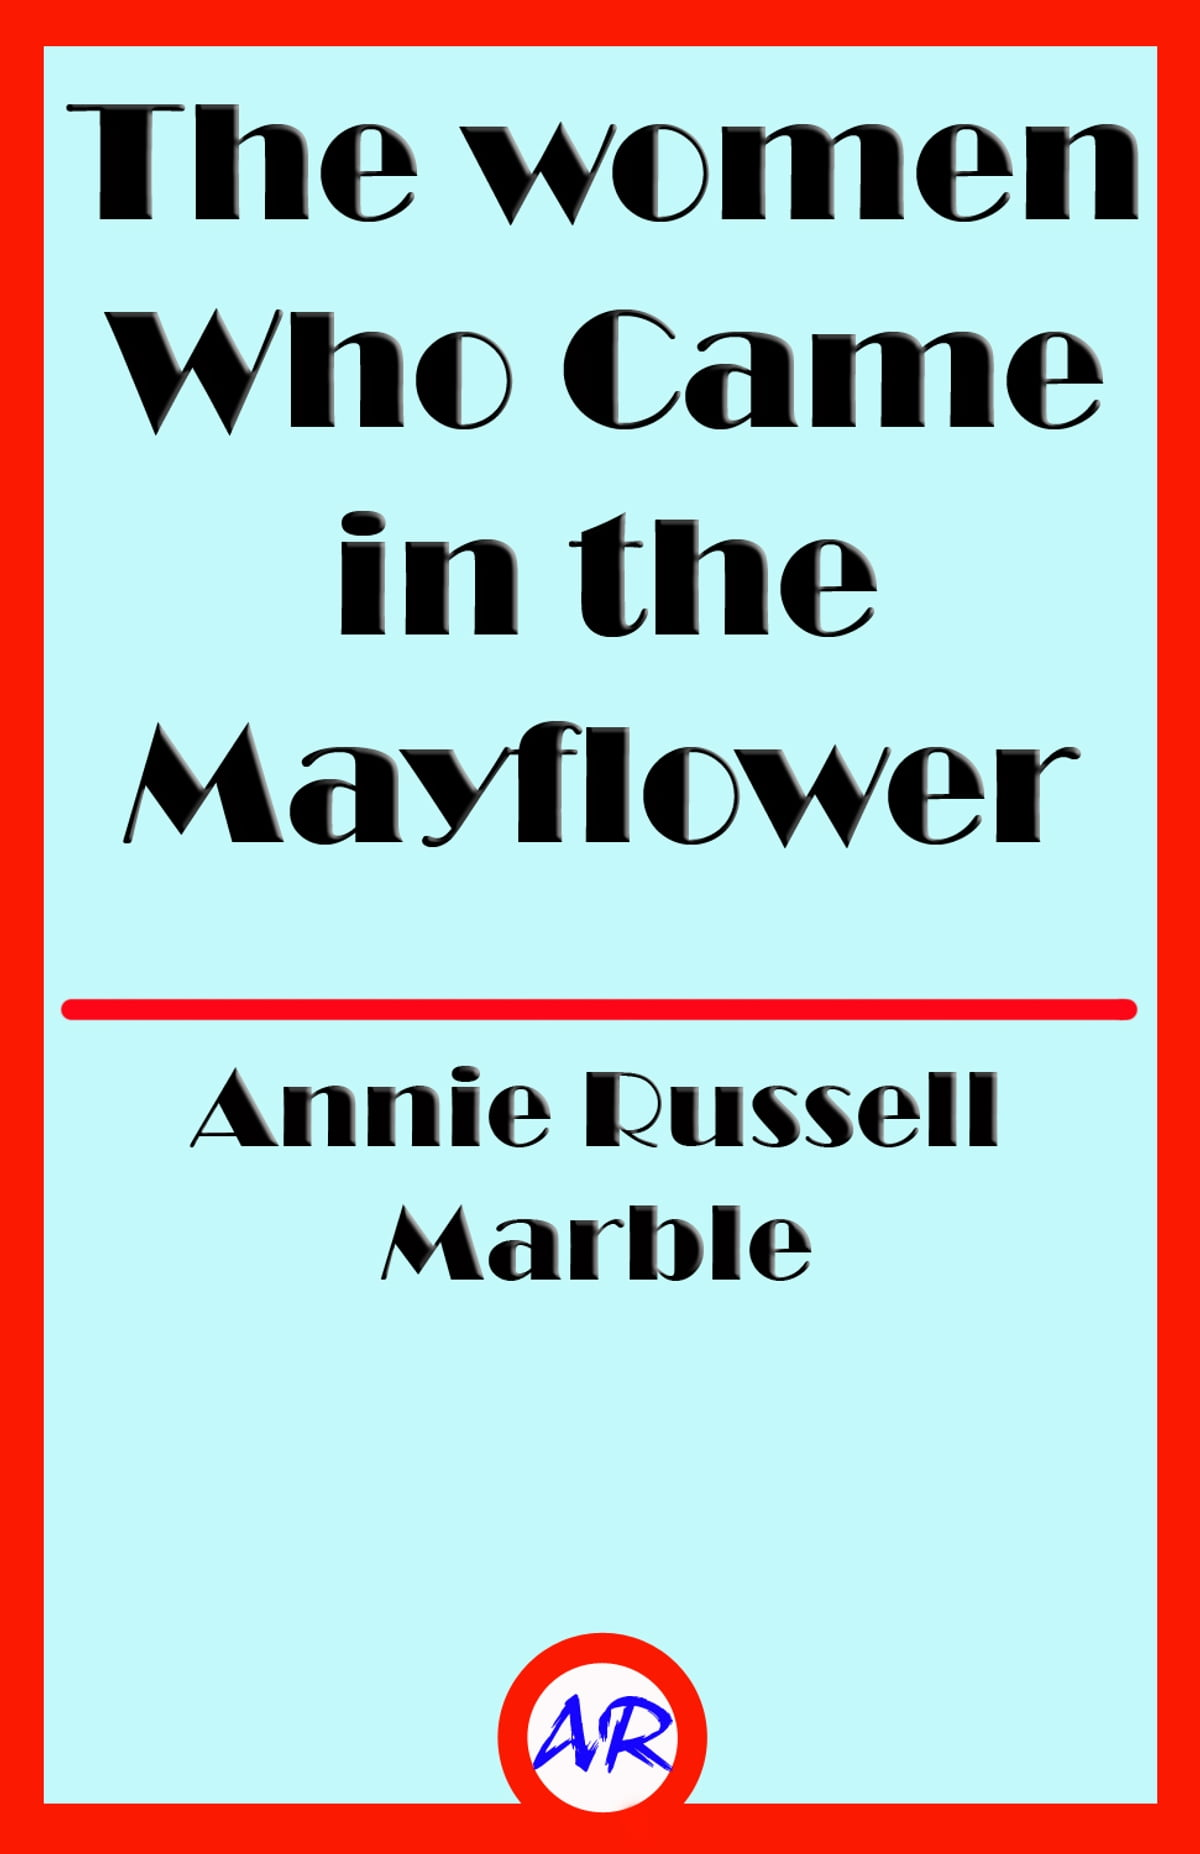 The women Who Came in the Mayflower eBook di Annie Russell Marble -  1230000991674 | Rakuten Kobo